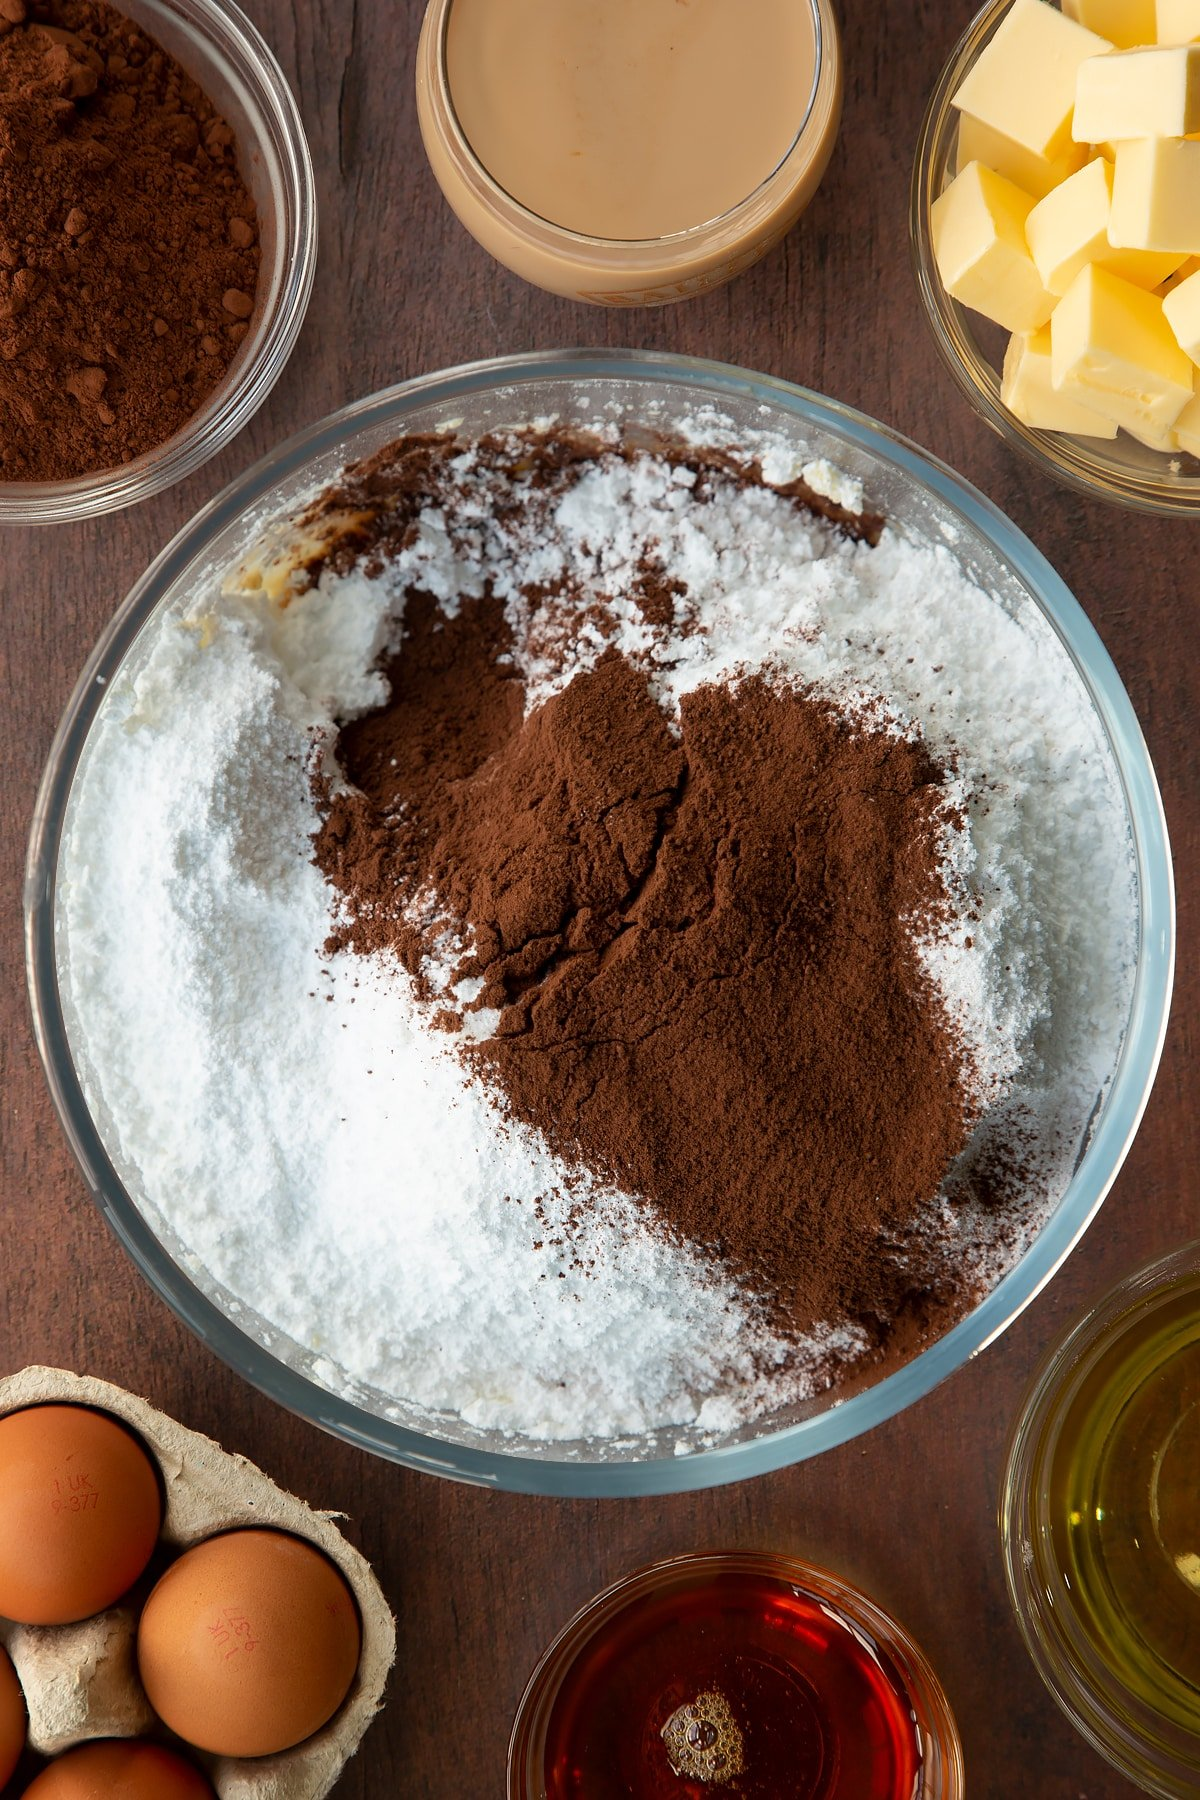 Whipped butter in a glass mixing bowl, topped with icing sugar, cocoa and Baileys. Ingredients to make a Baileys cake surround the bowl.